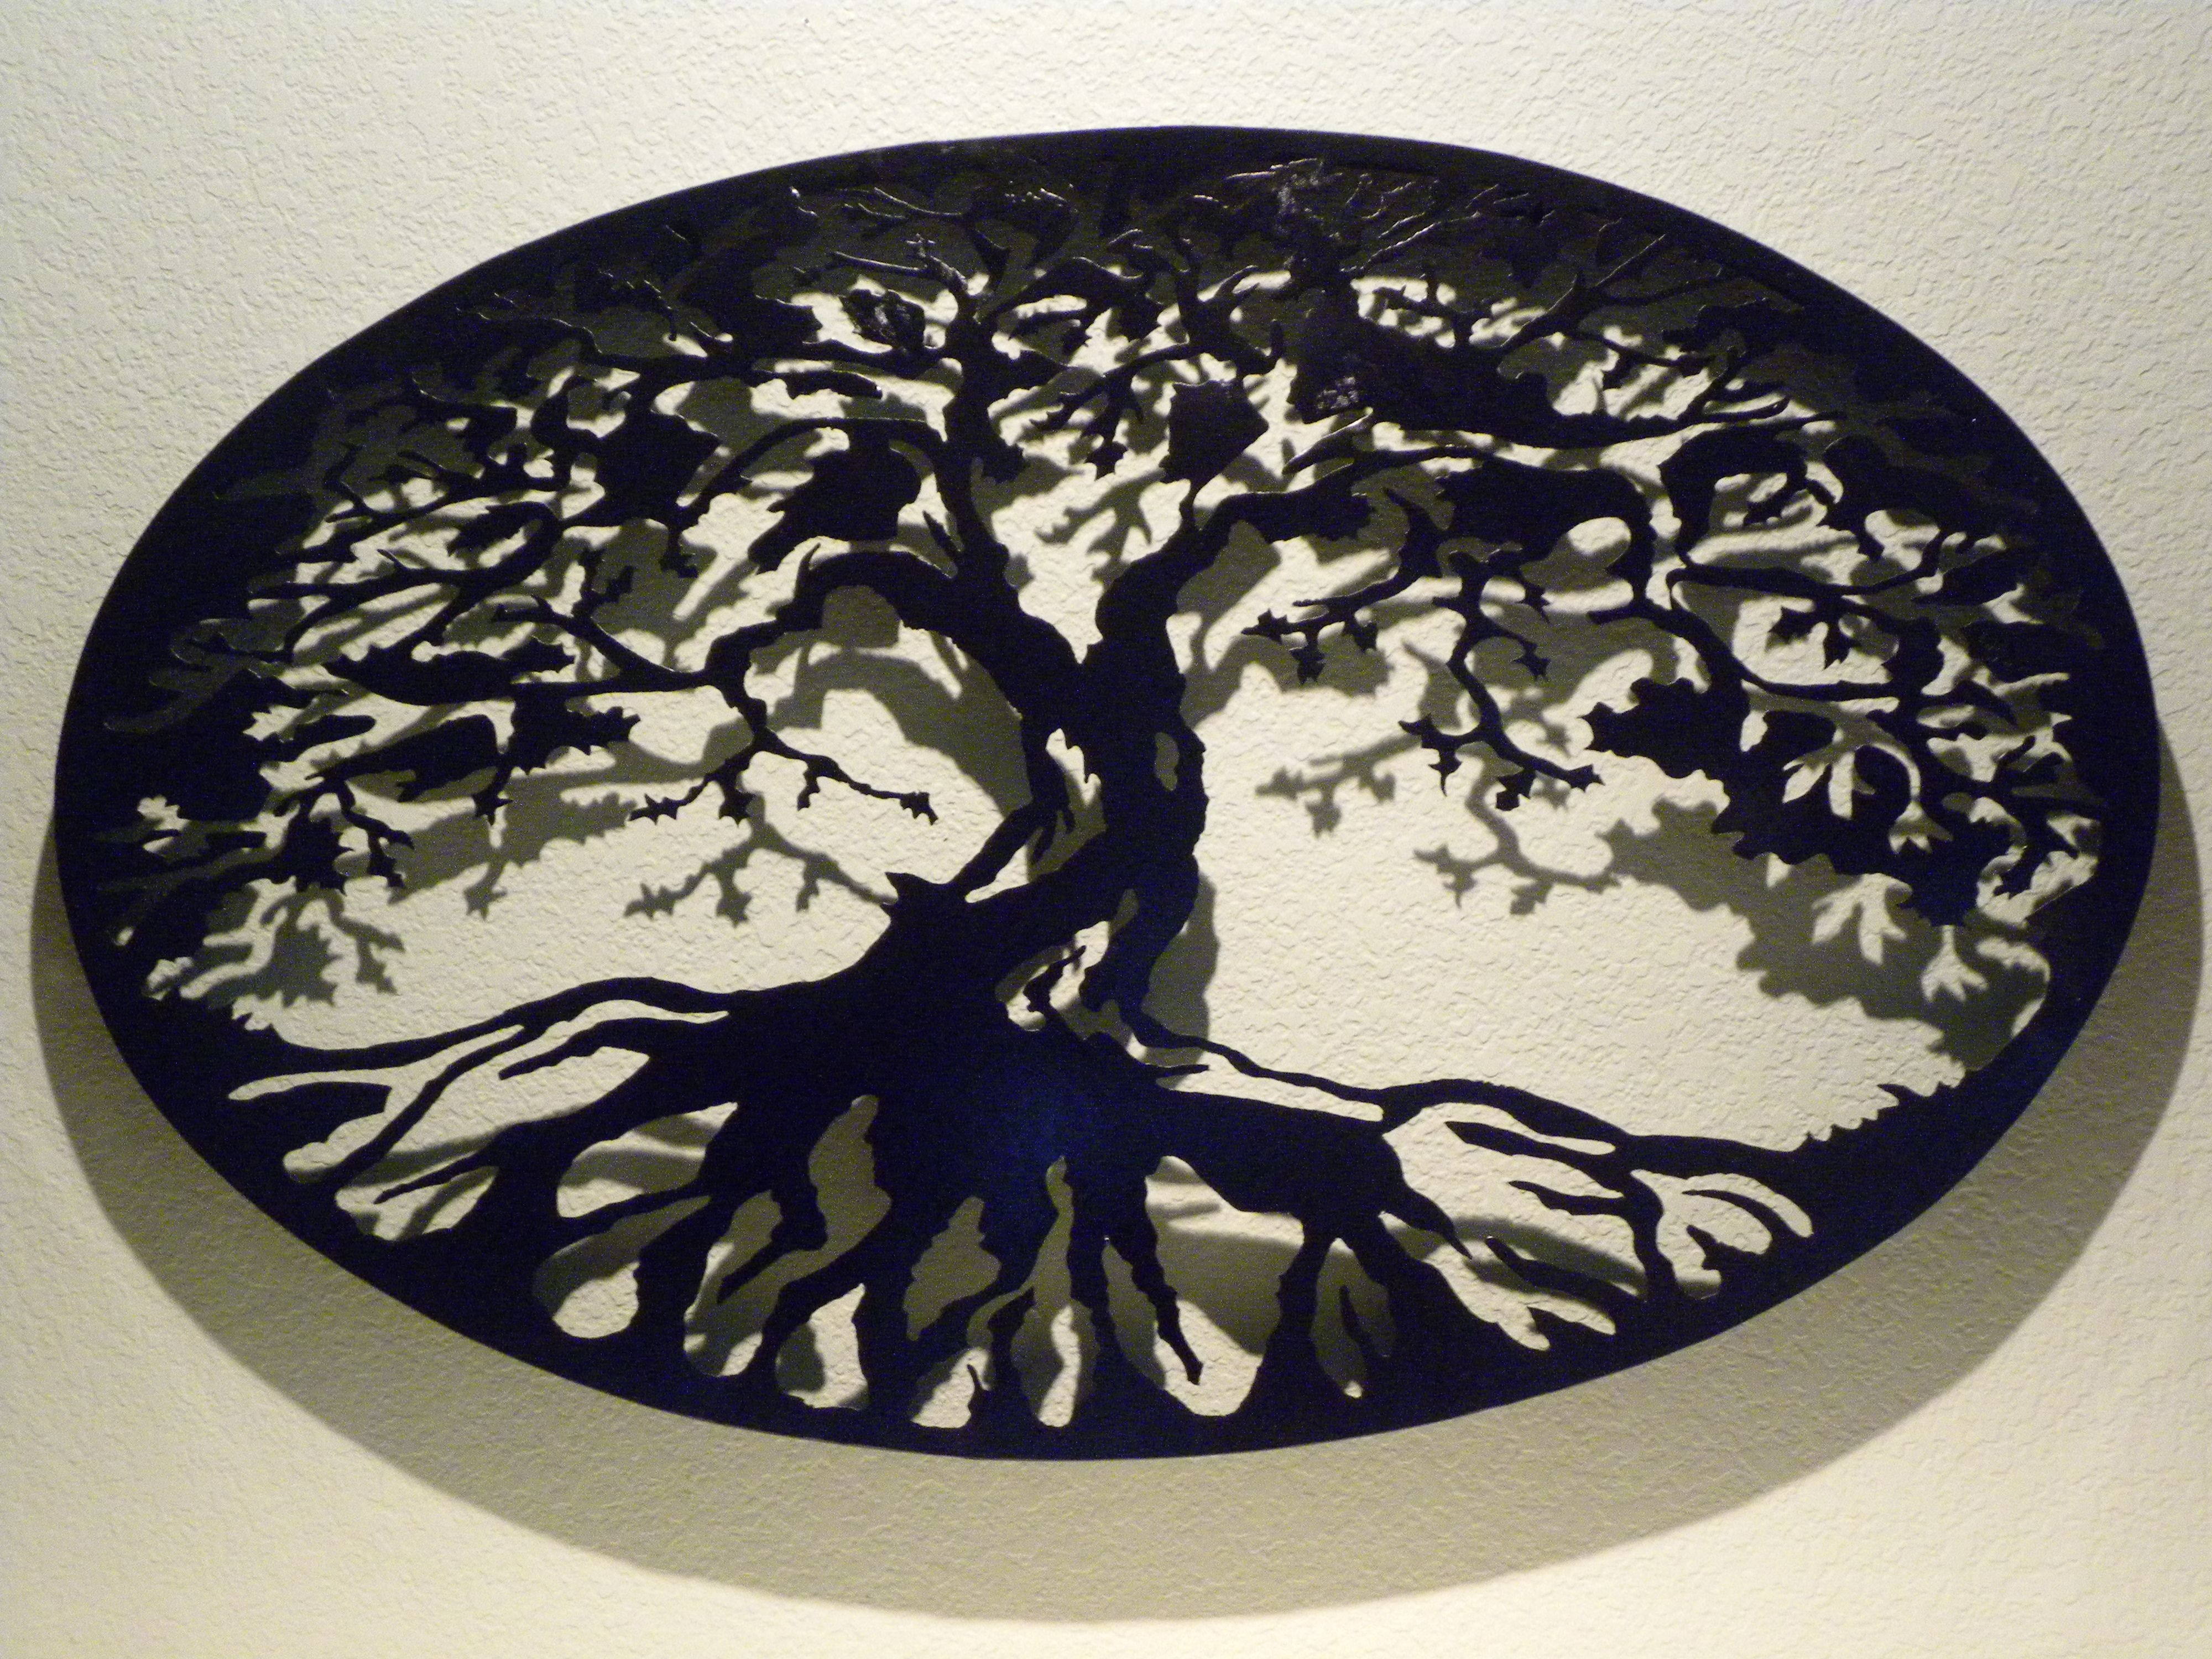 Buy A Custom Oval Tree Of Life Metal Wall Art, Made To Order From With Regard To 2018 Tree Of Life Wall Art (View 2 of 15)